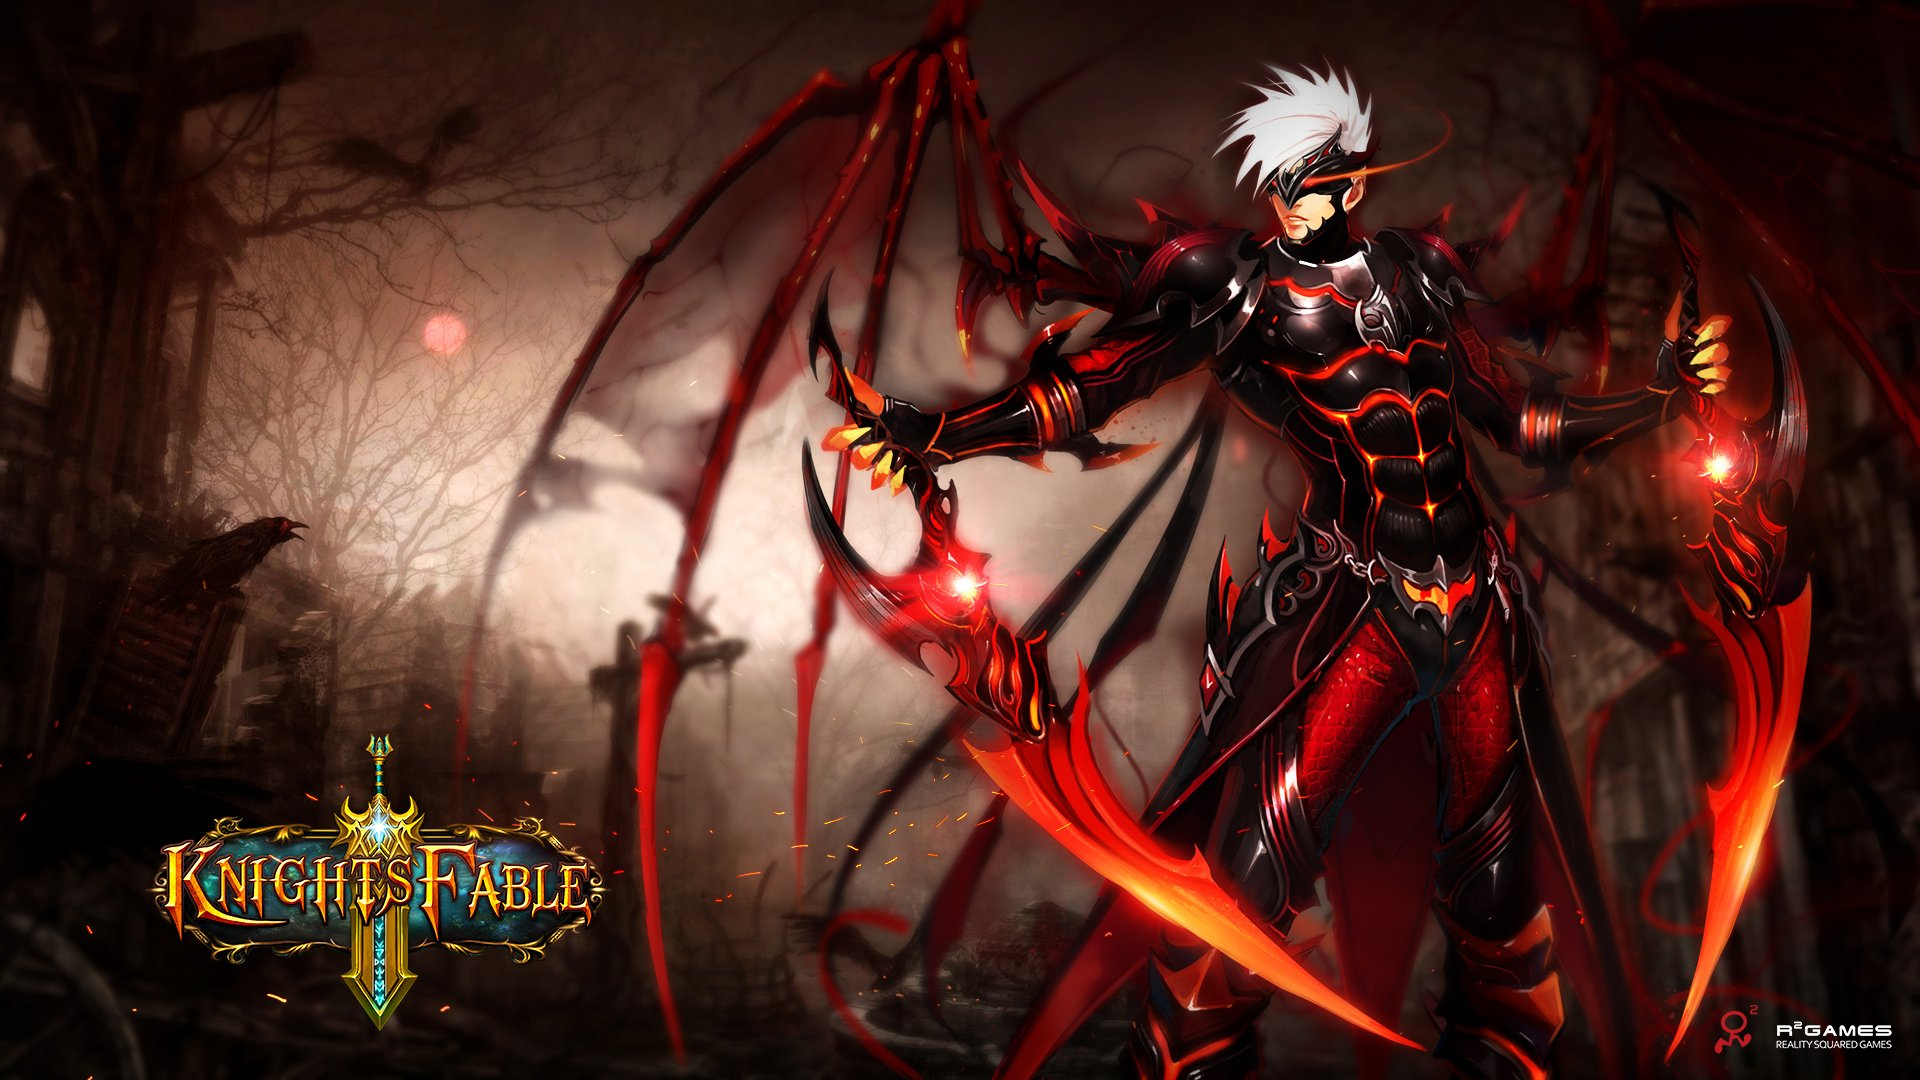 KNIGHTS FABLE fantasy mmo rpg online hero heroes King